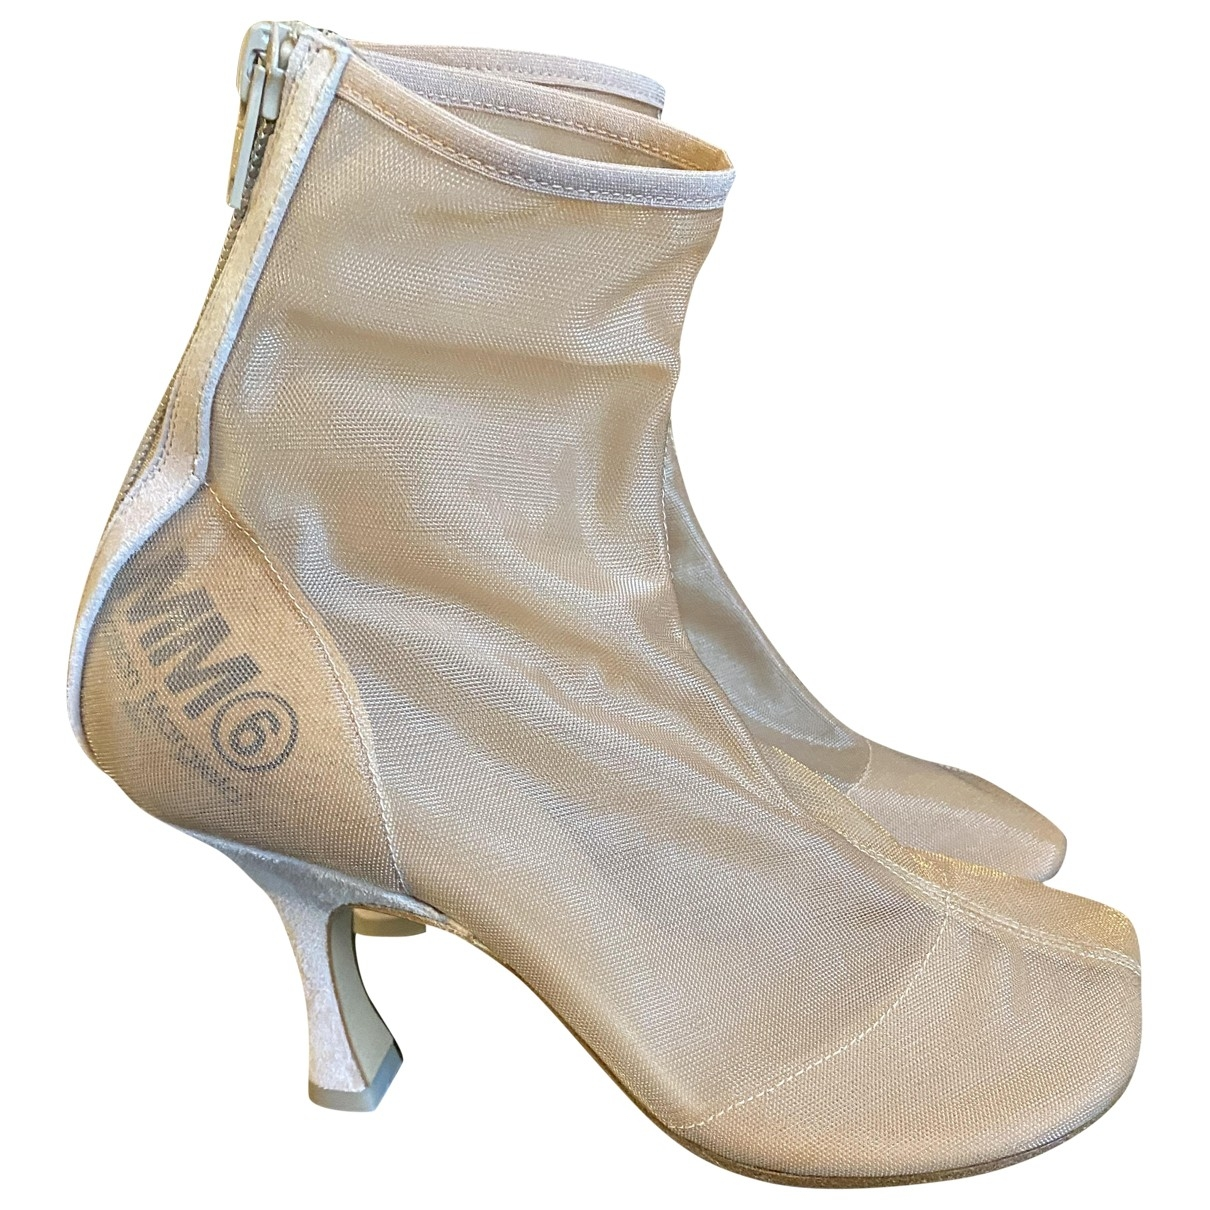 Mm6 \N Beige Cloth Ankle boots for Women 37 EU